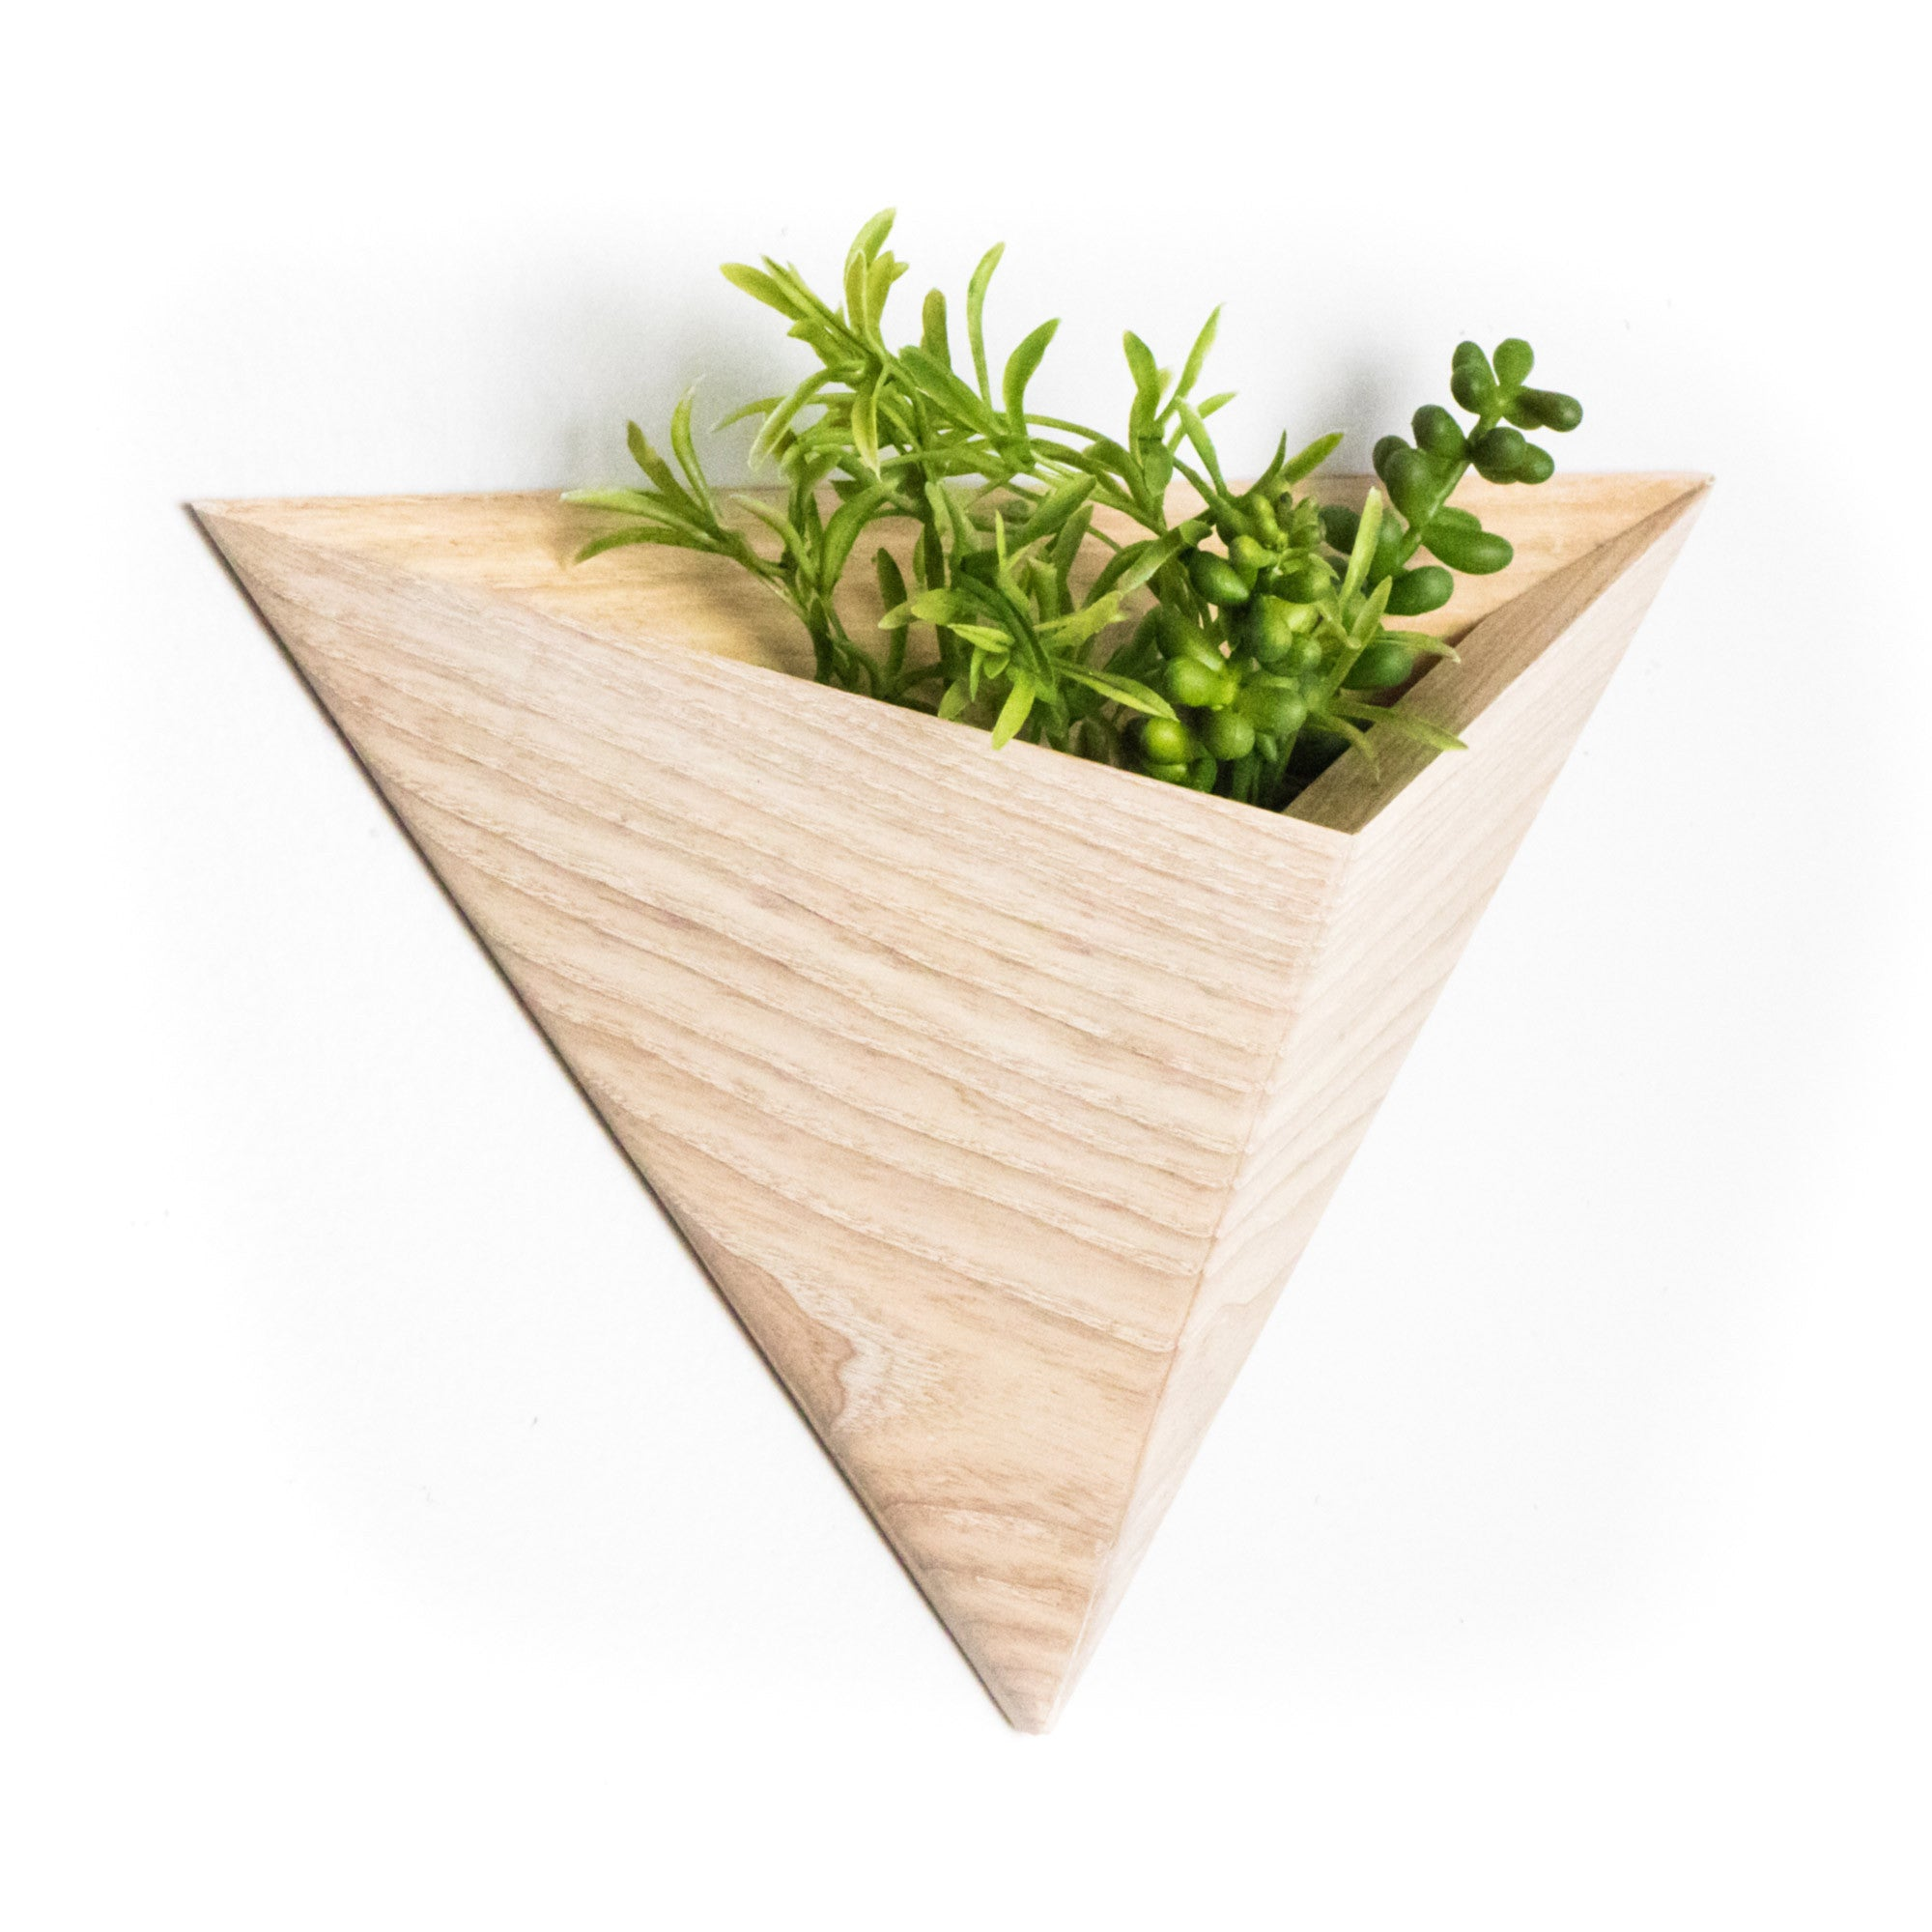 Geometric White Ash Wood Wall Planter